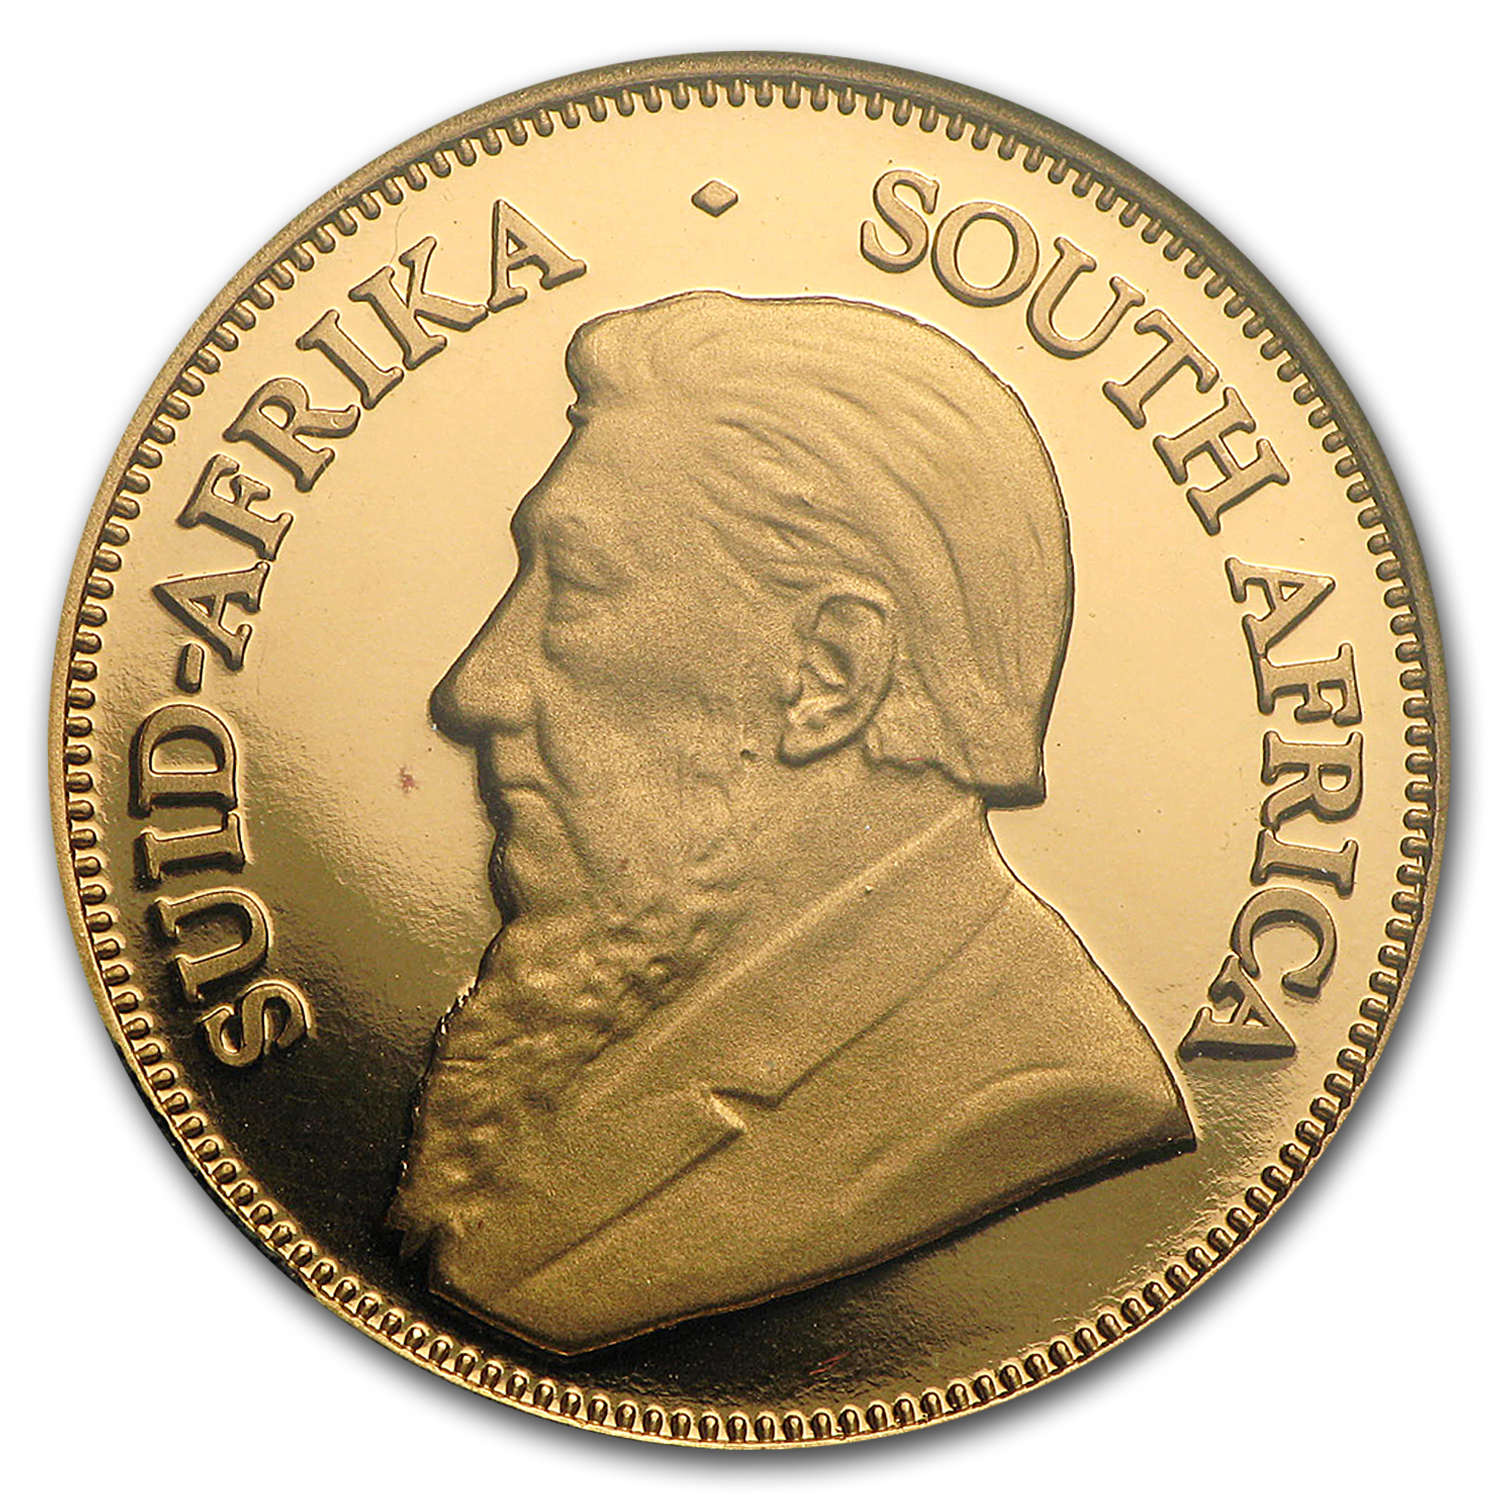 2005 South Africa 1/4 oz Proof Gold Krugerrand